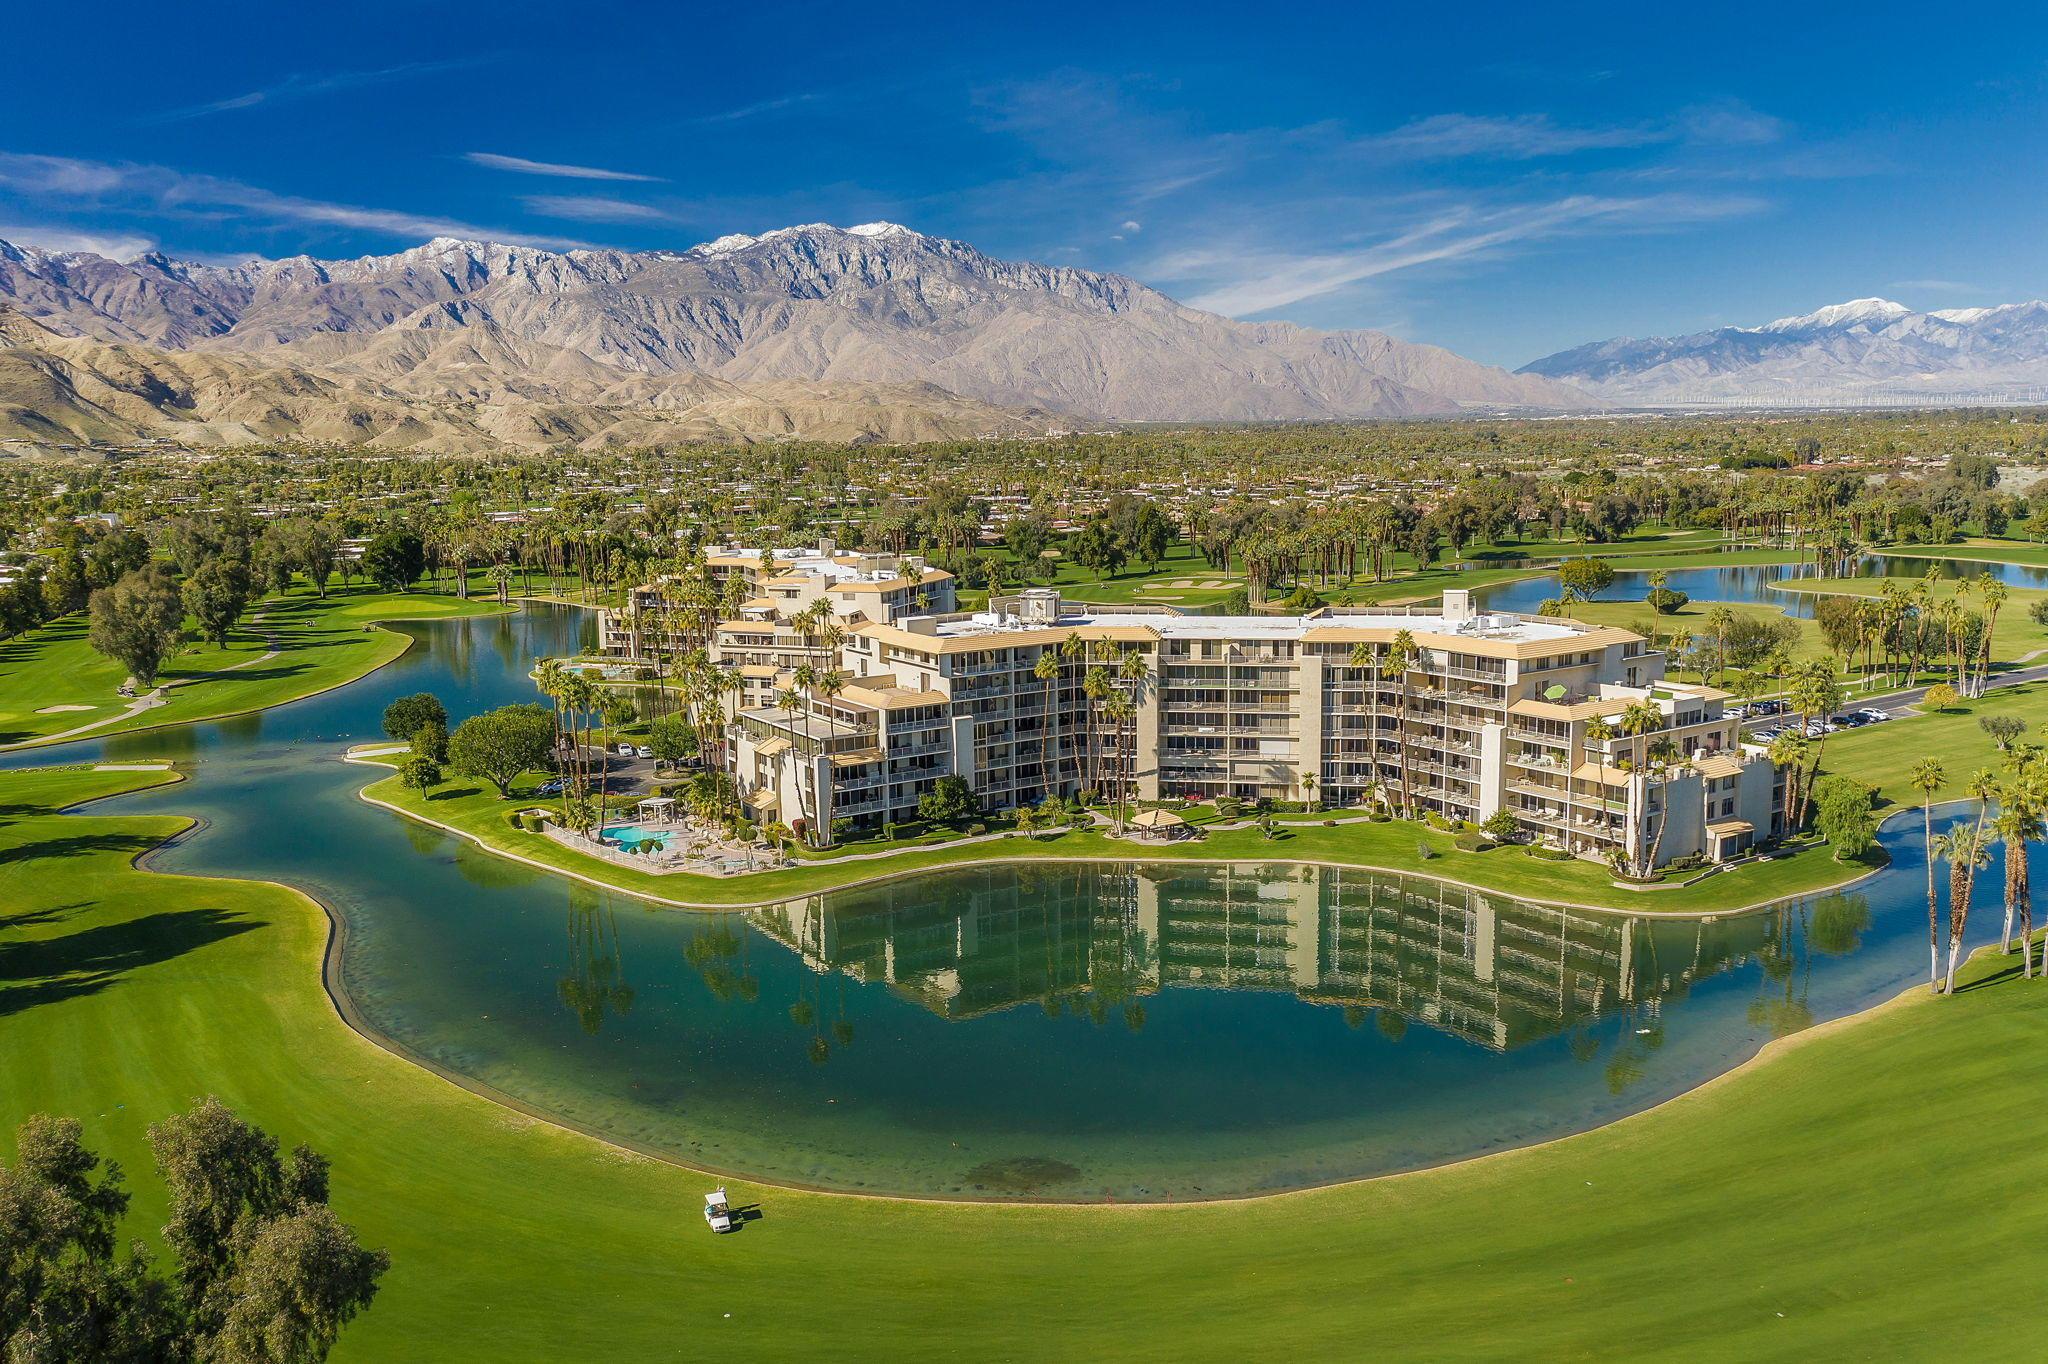 This spacious condo offers Spectacular Mountain, Lake & Golf Course Views through 9-ft walls of glass. You will enjoy this popular open floor plan perfect for entertaining, all rooms have direct access to huge terrace with gas BBQ jet, Master suite is spacious and has walk-in closet.  Most utilities are included, along with Air Conditioning, Cable TV & Internet.  This is an opportunity to buy a desirable location and floorplan perfect for remodel and make it your own.    Desert Island is a unique high-rise condominium community nestled on a lush green 25-acre island, surrounded by a sparkling lake and immaculate private 18-hole championship golf course.  Centrally located in Rancho Mirage, close to shopping, restaurants, casinos and much more. Homeowners enjoy the open park like grounds with walking paths, fruit trees, benches, tennis & pickle ball courts, heated swimming pools & spas, pedal boats, fishing and 24hour guard gated entry.